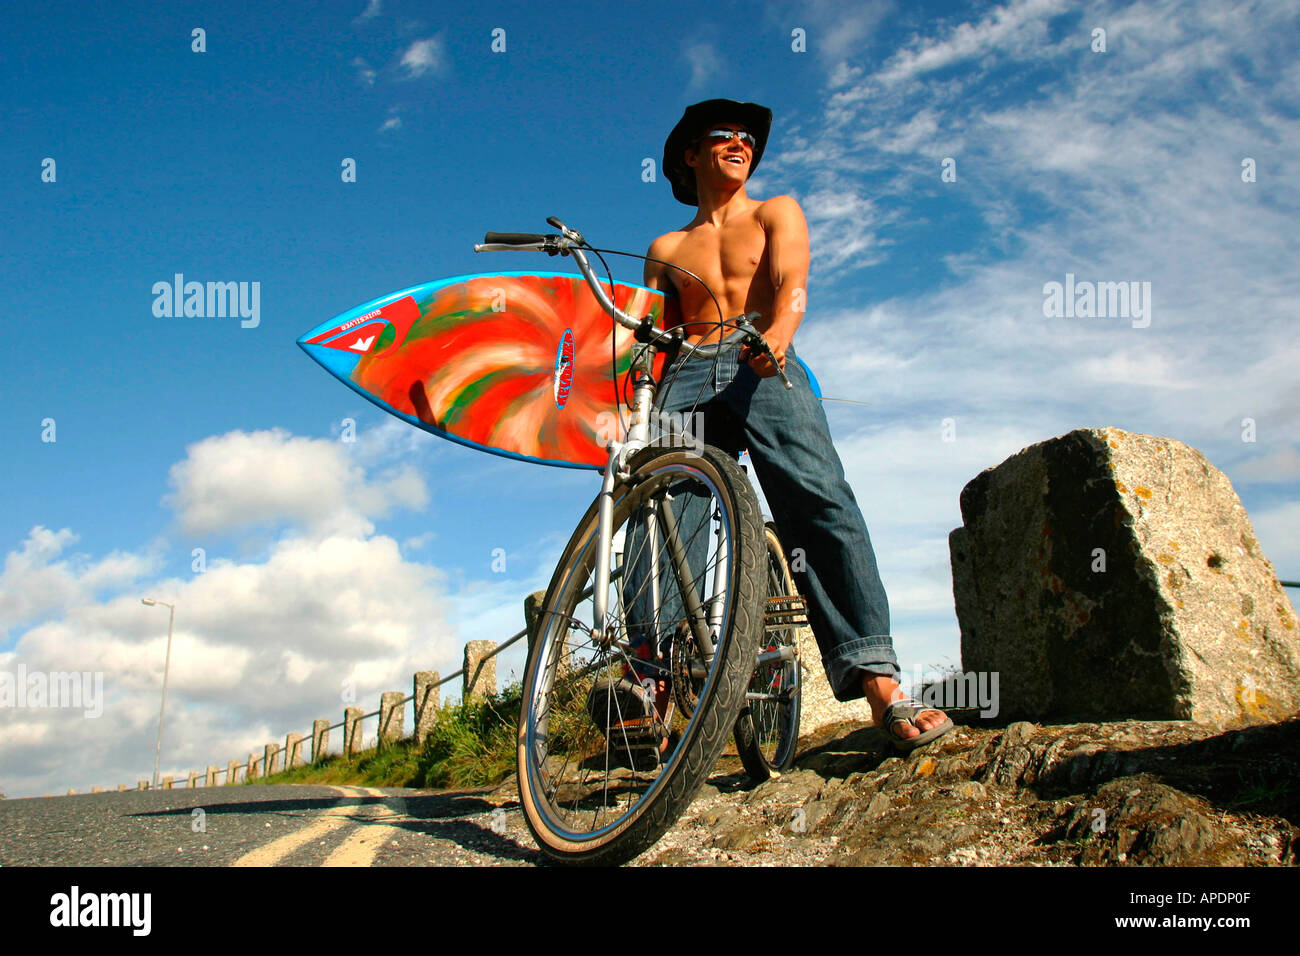 Alan Stokes portrait at the Rip Curl Boardmasters Newquay 2002 - Stock Image